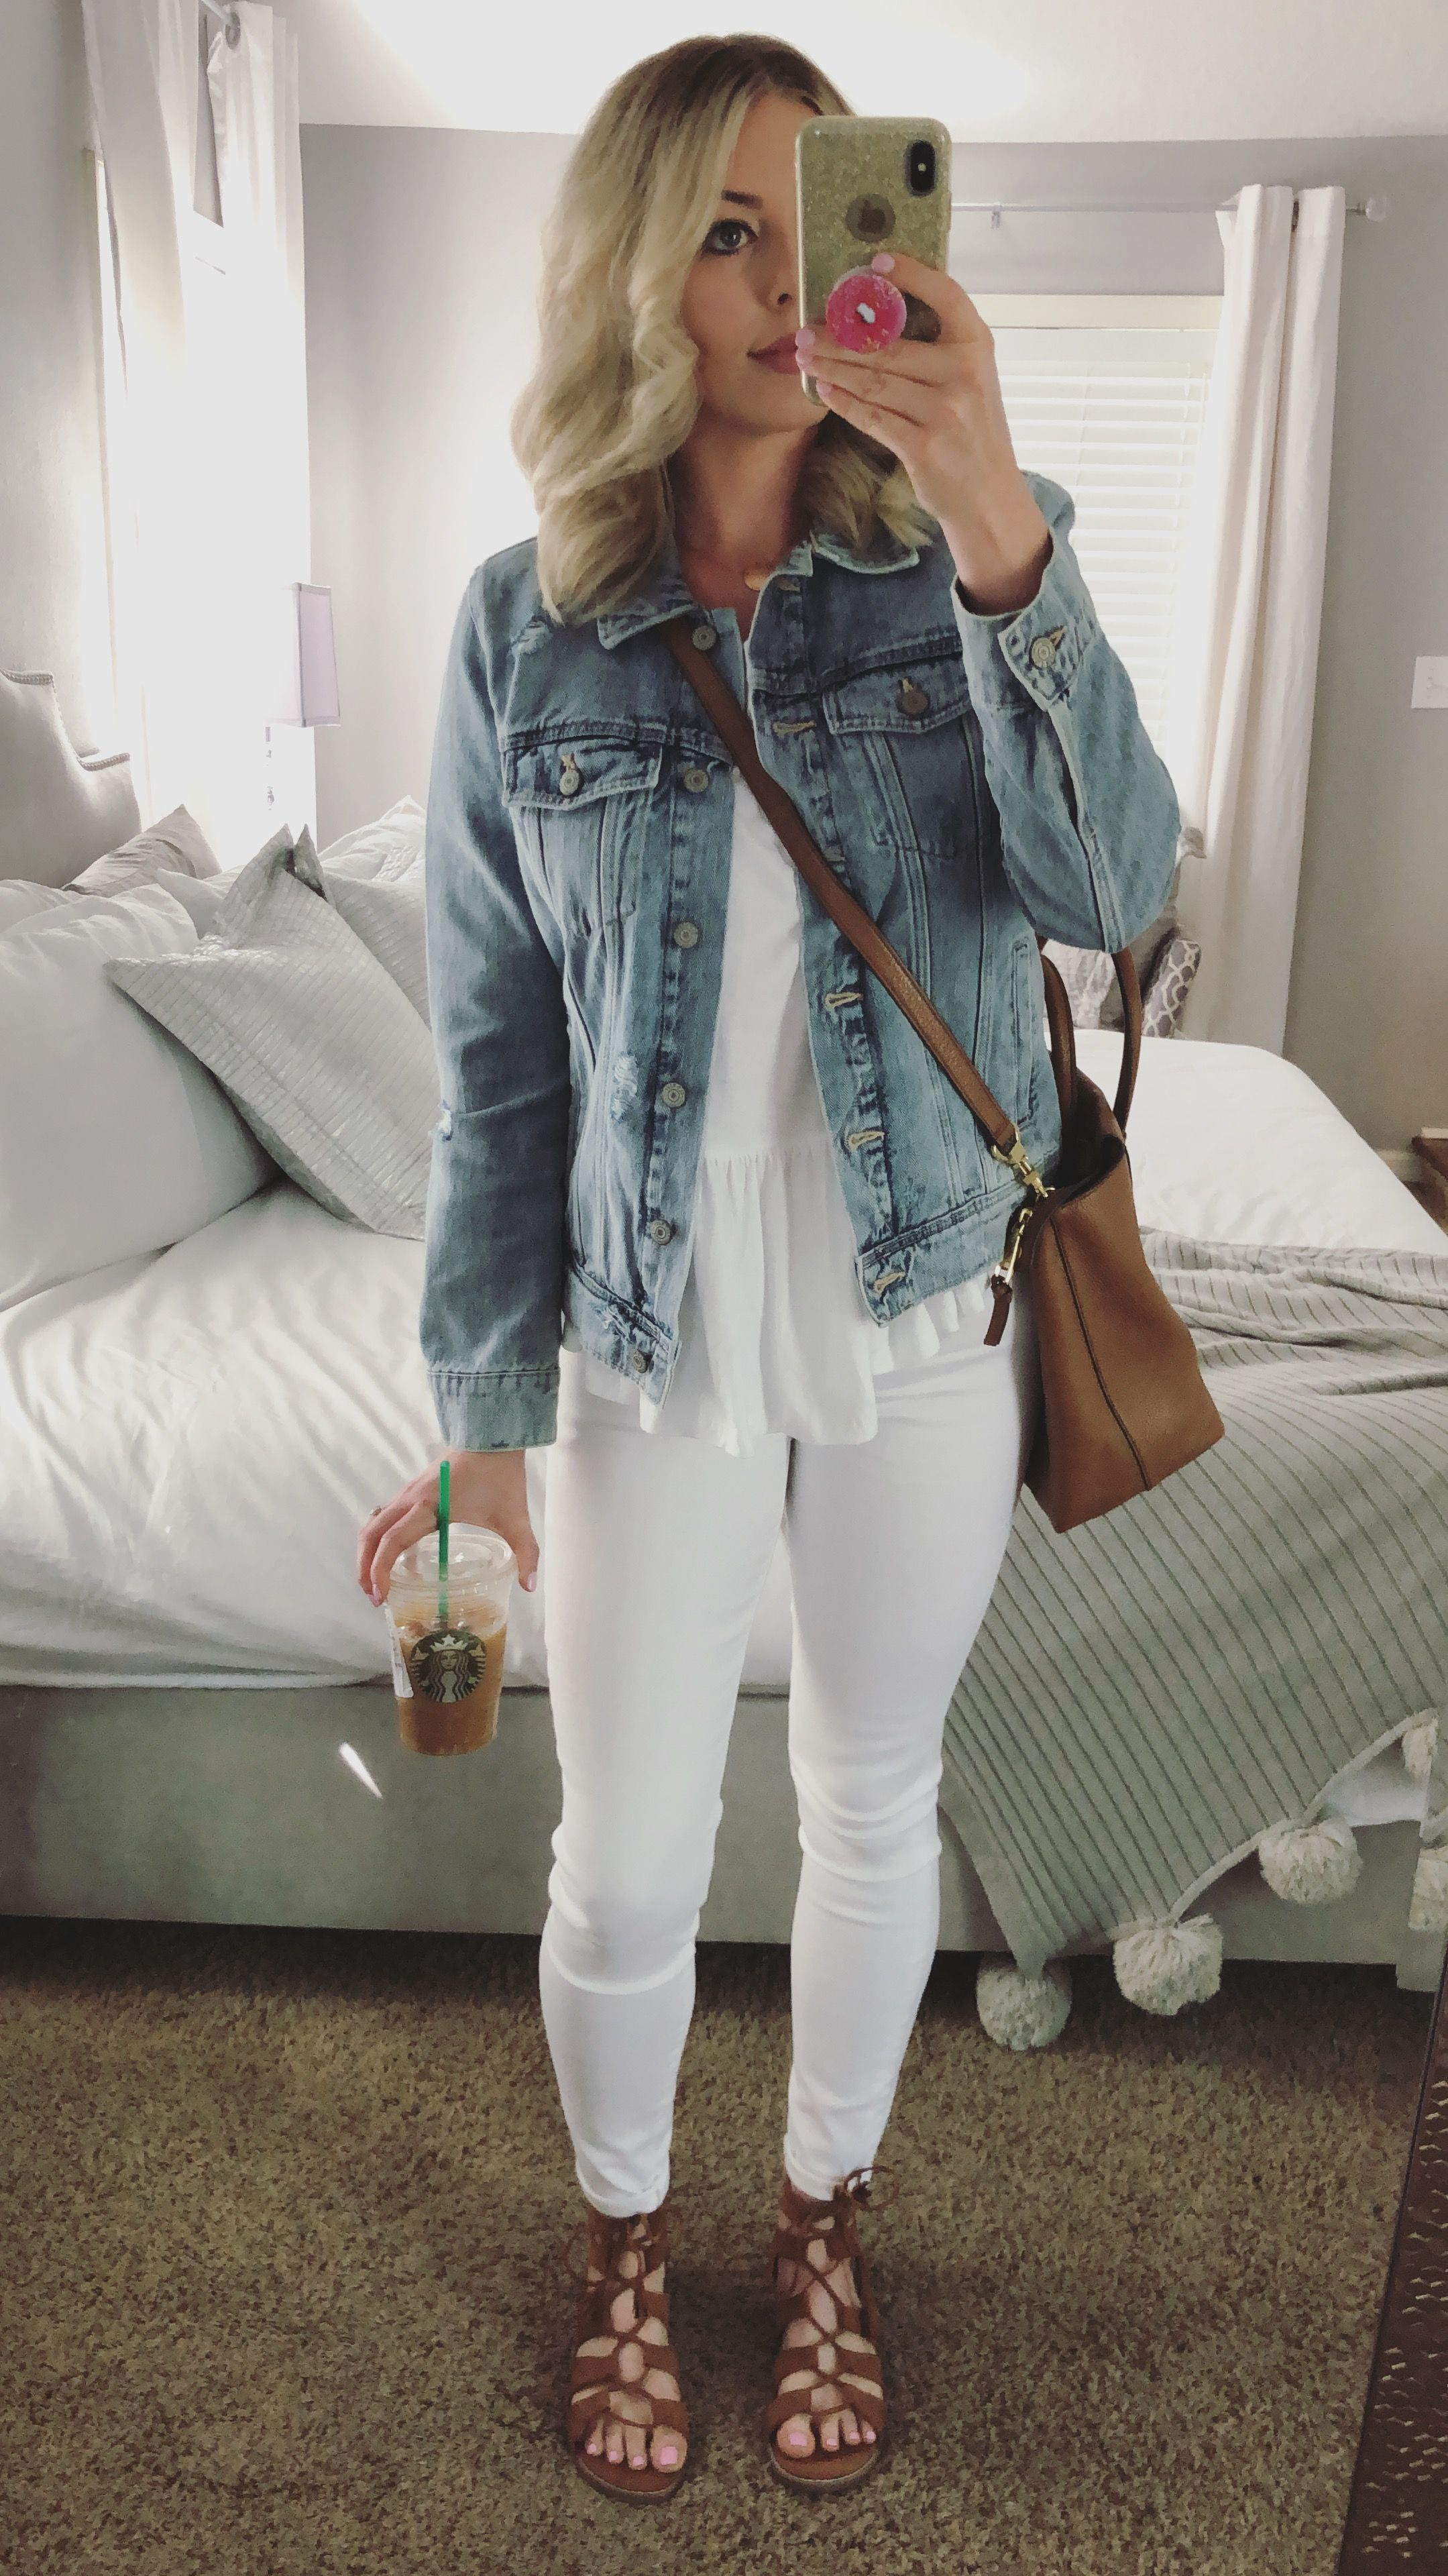 Spring Outfit Idea Light Denim Jacket With White Jeans All White With Denim Outfit Idea Light Denim Outfit Light Denim Jacket Light Denim